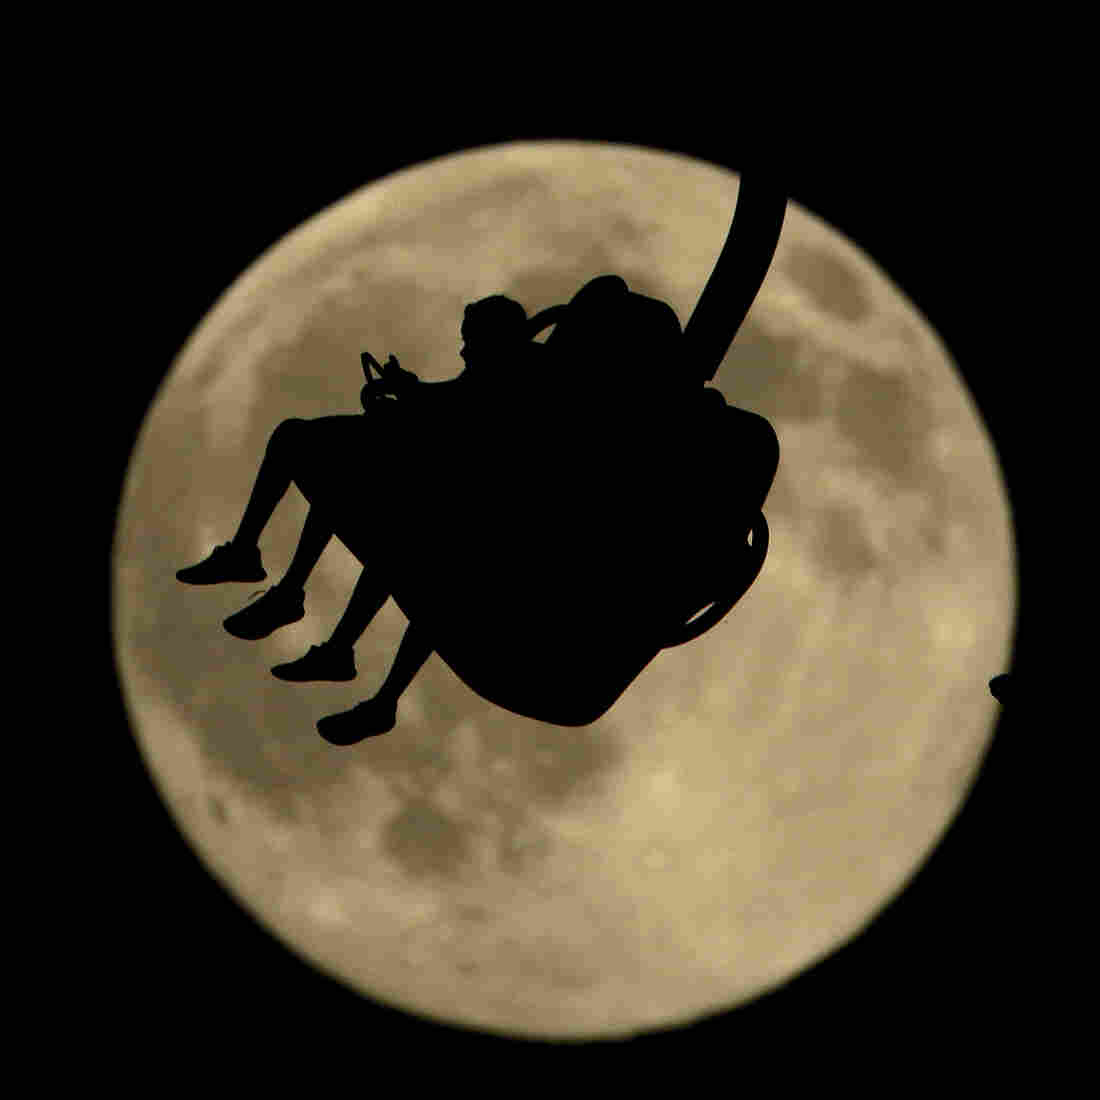 """People are silhouetted against a nearly full moon as they ride an attraction at Worlds of Fun amusement park Thursday in Kansas City, Mo. July 31 marks the second full moon of the month, a rare occurrence that has come to be known as a """"blue moon."""""""